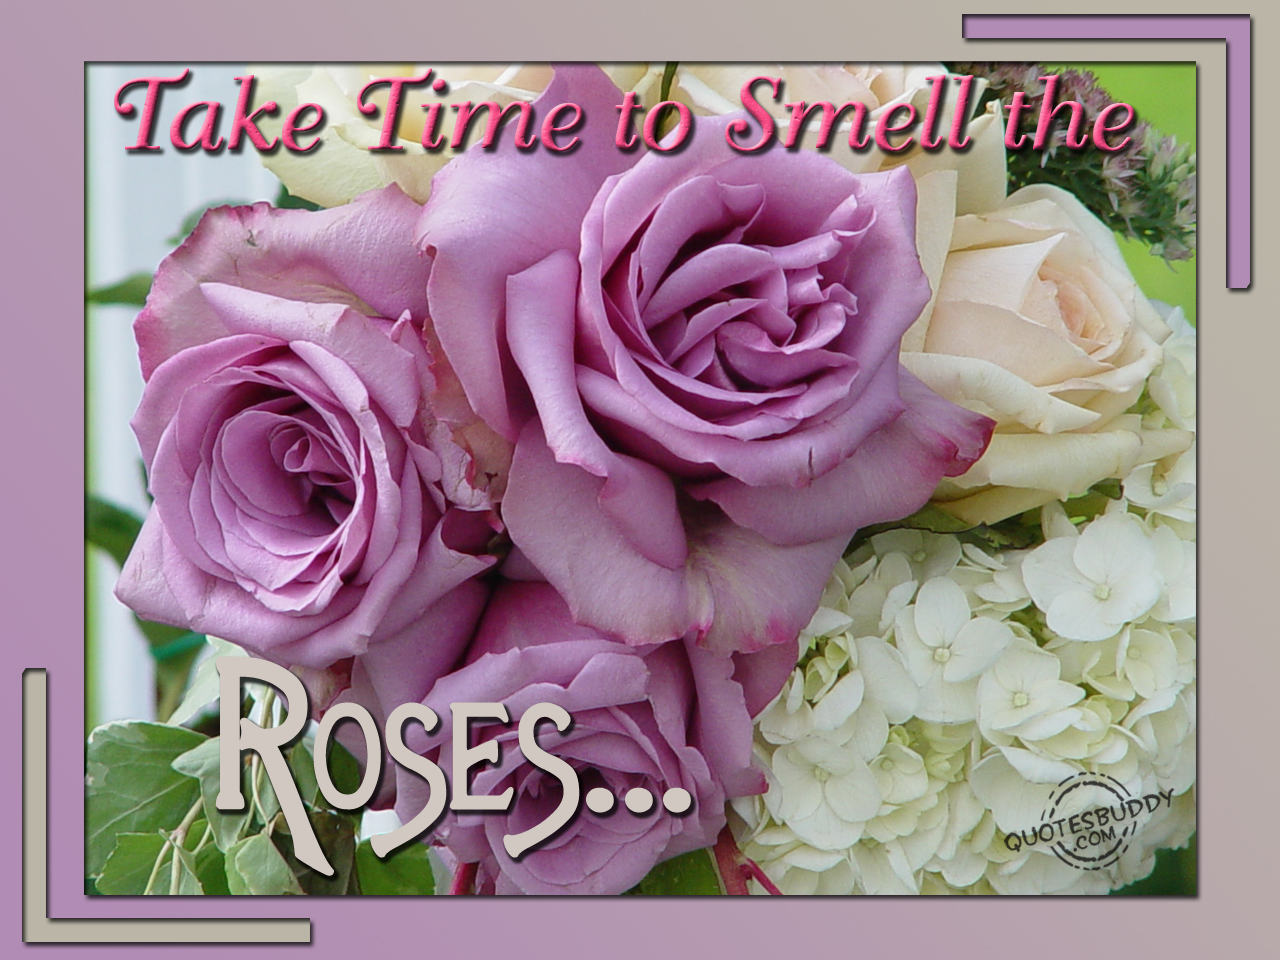 Flower quote #4